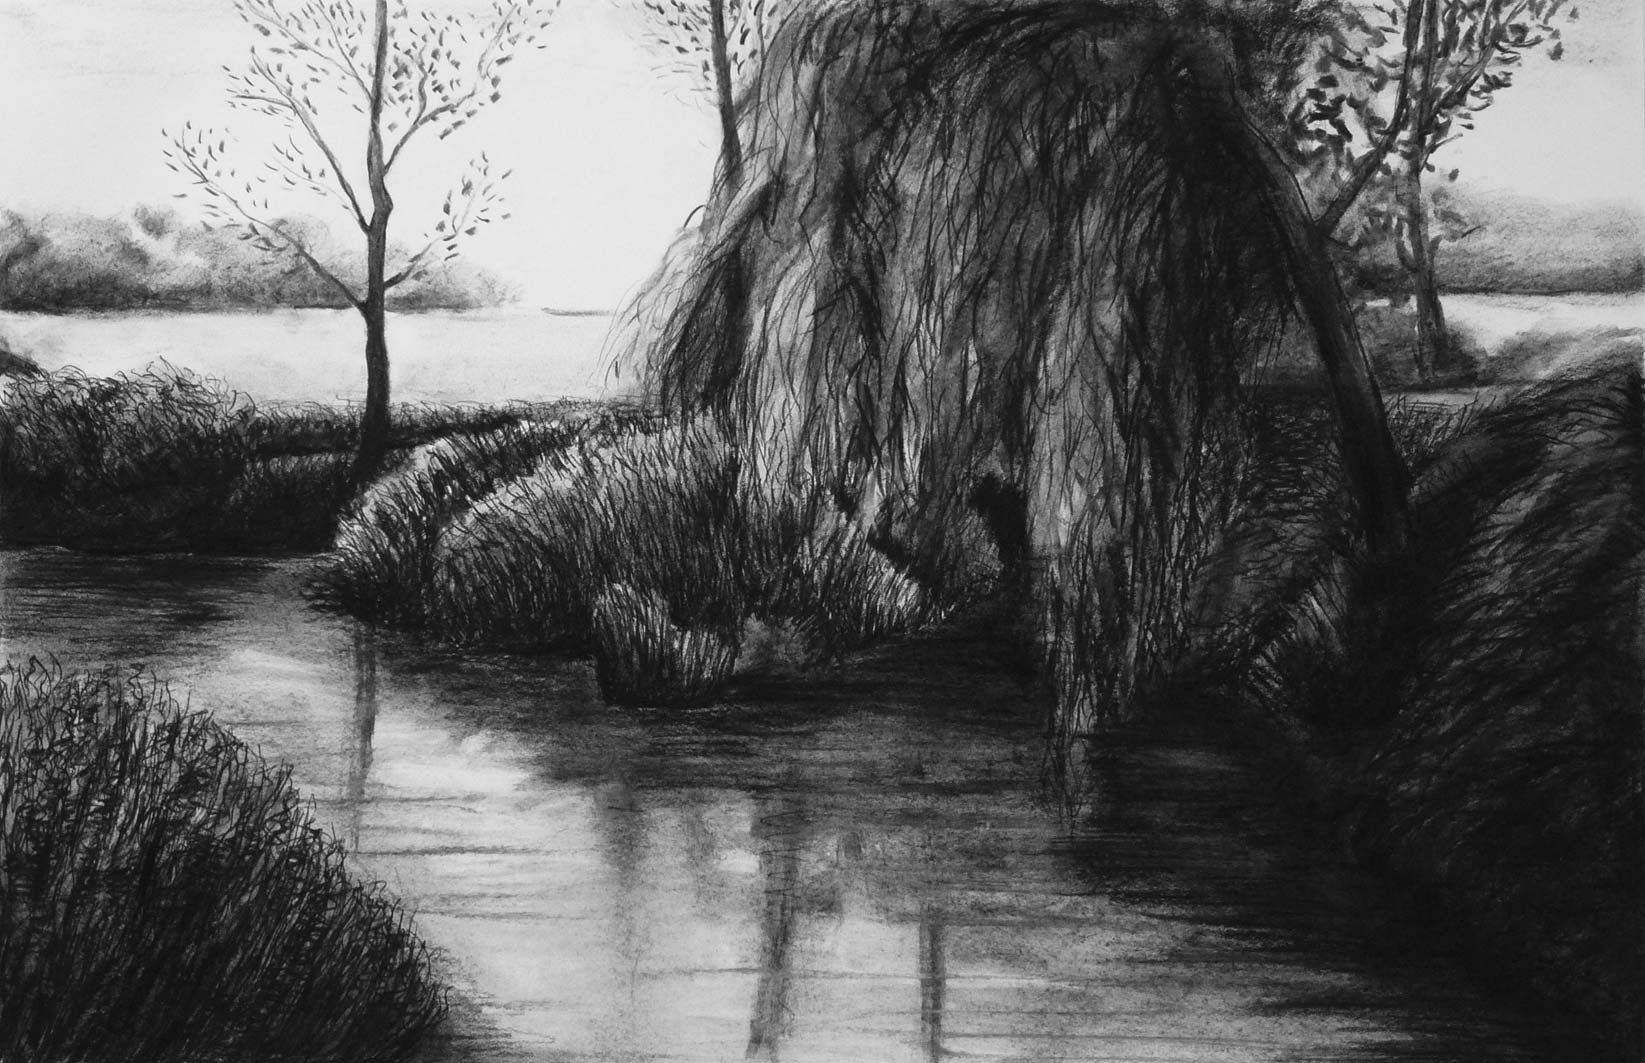 River Stour backwaters, charcoal, private collection